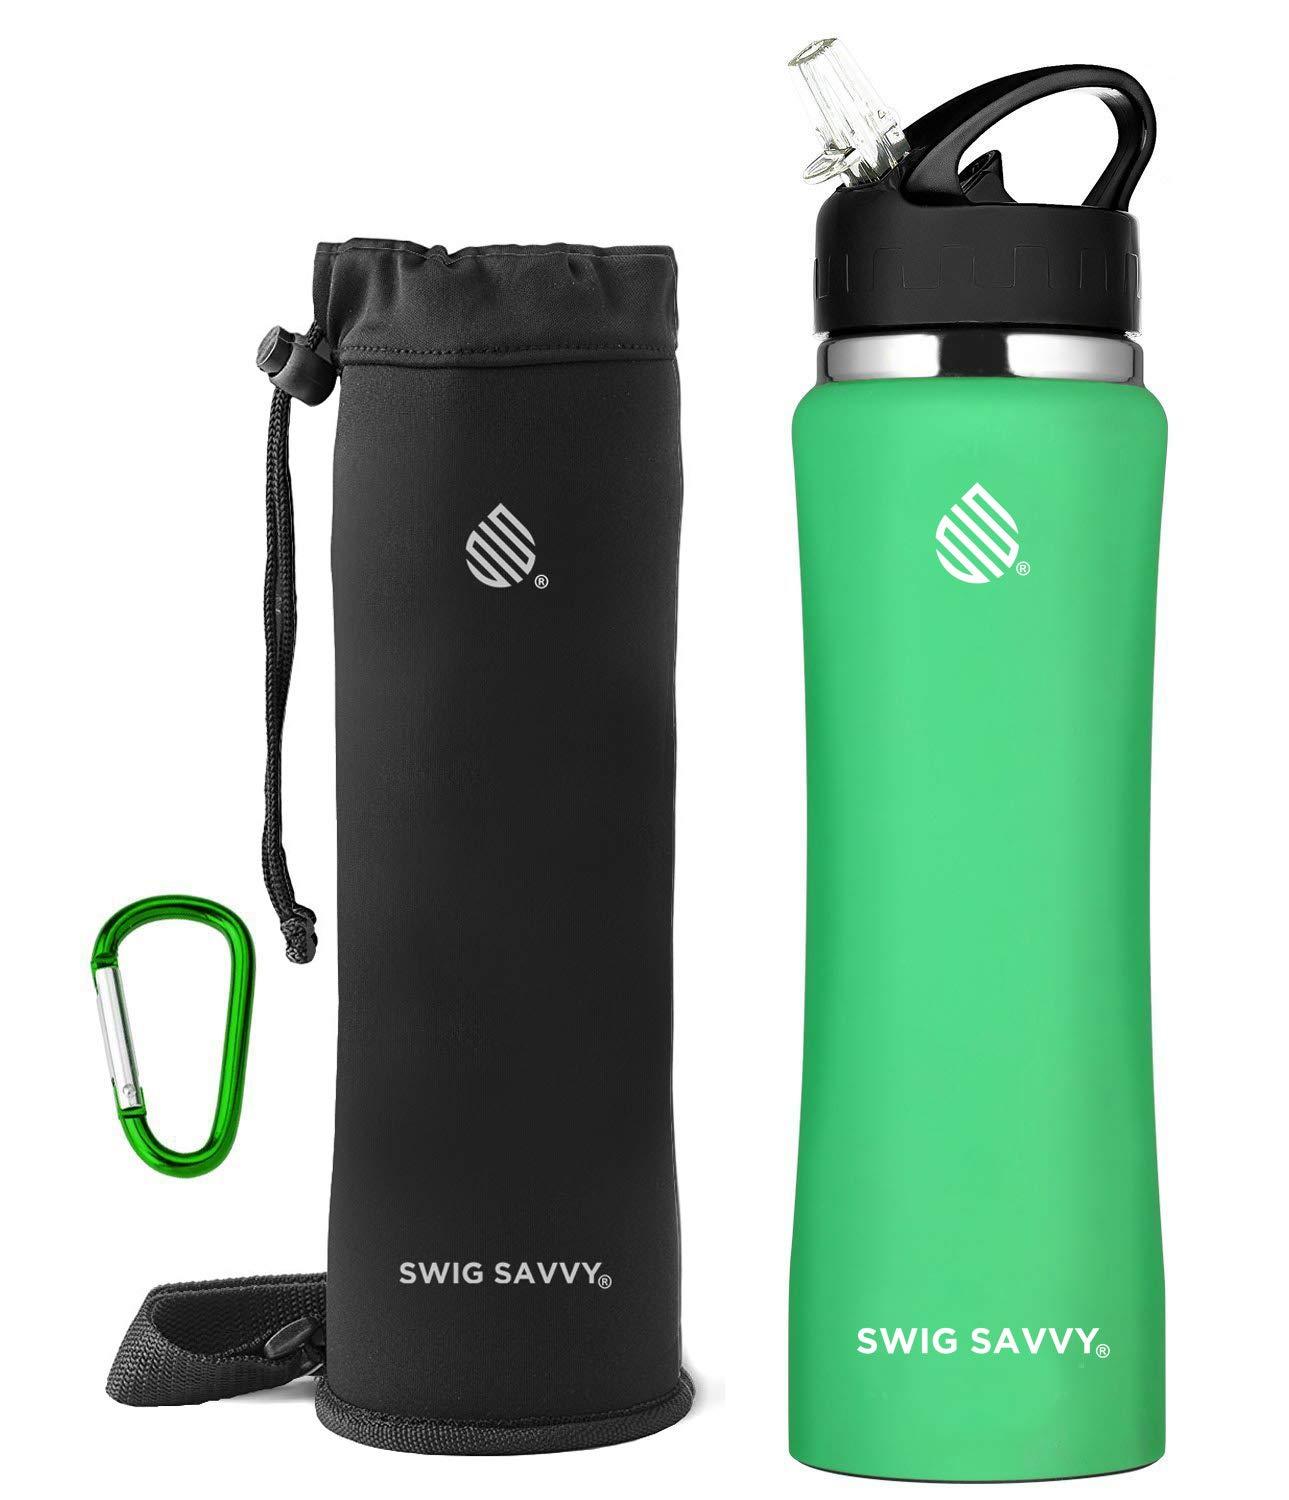 Top 10 Best Stainless Steel Water Bottle Reviews in 2020 4